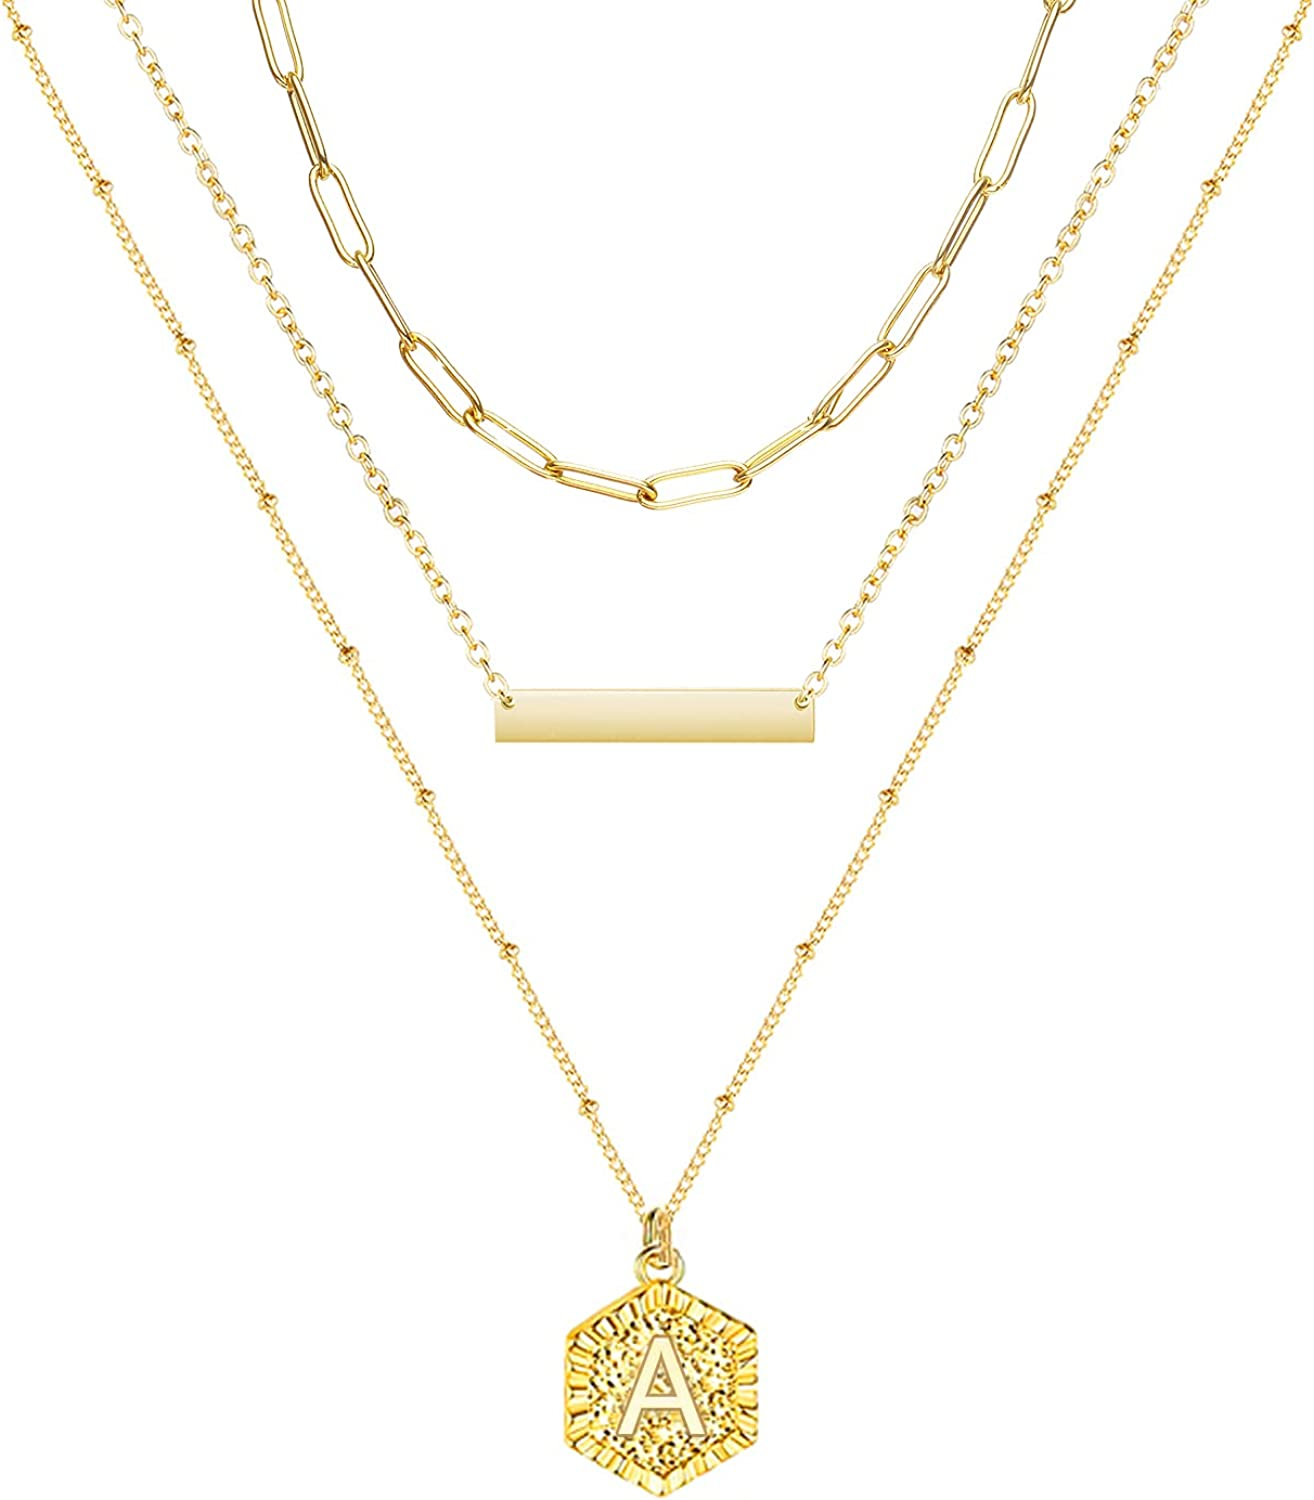 YANCHUN Layered Initial Necklaces for Women 3Pcs Gold Paperclip Chain Bar Choker Necklace Cute Hexagon Charm Pendant Necklaces for Teen Girls